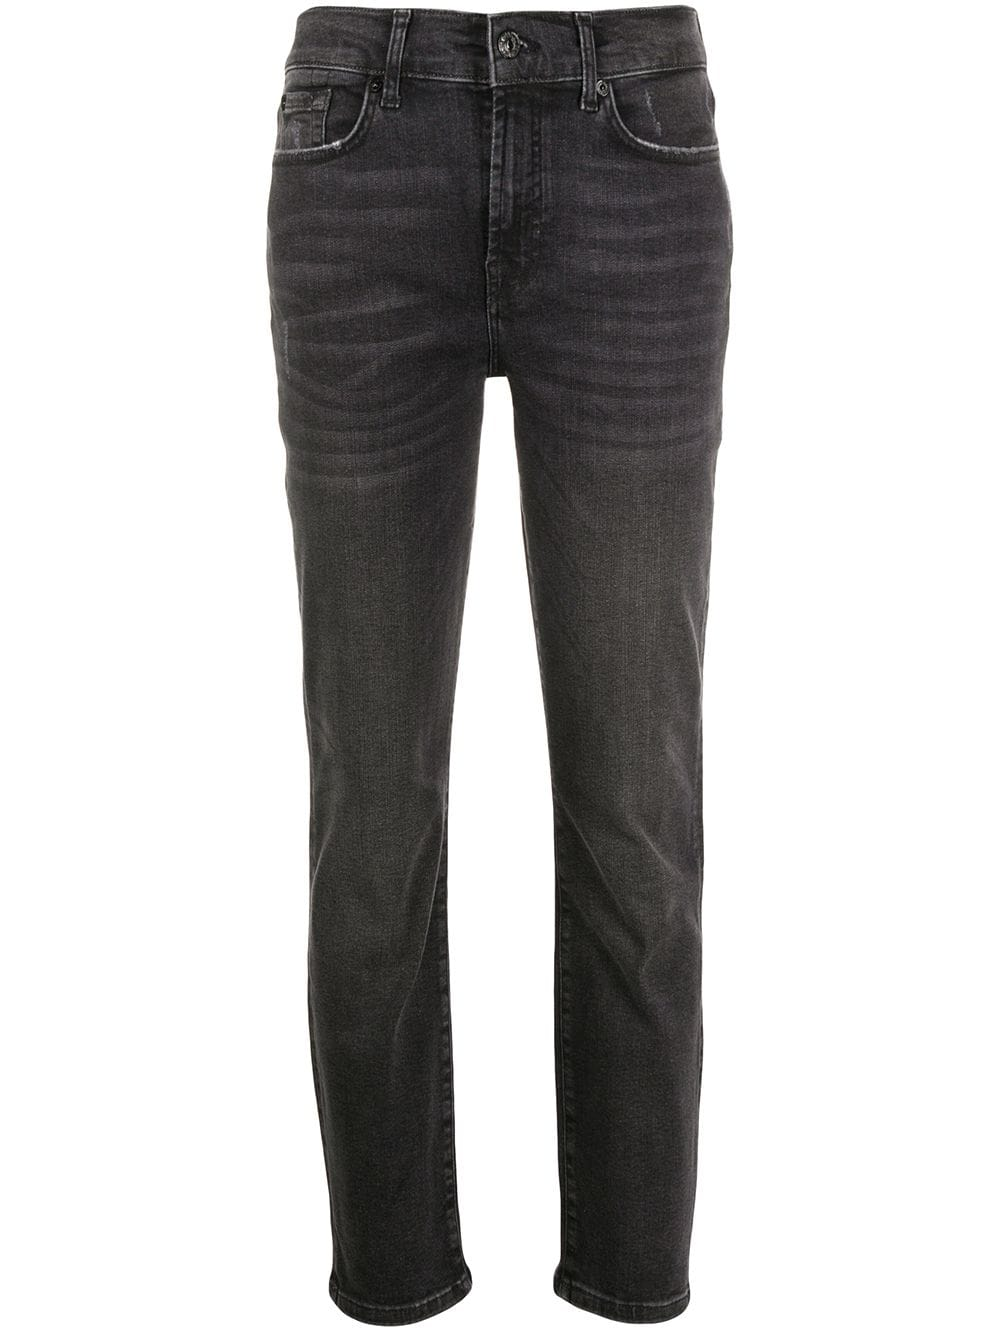 Relaxed Skinny Illusion Jeans